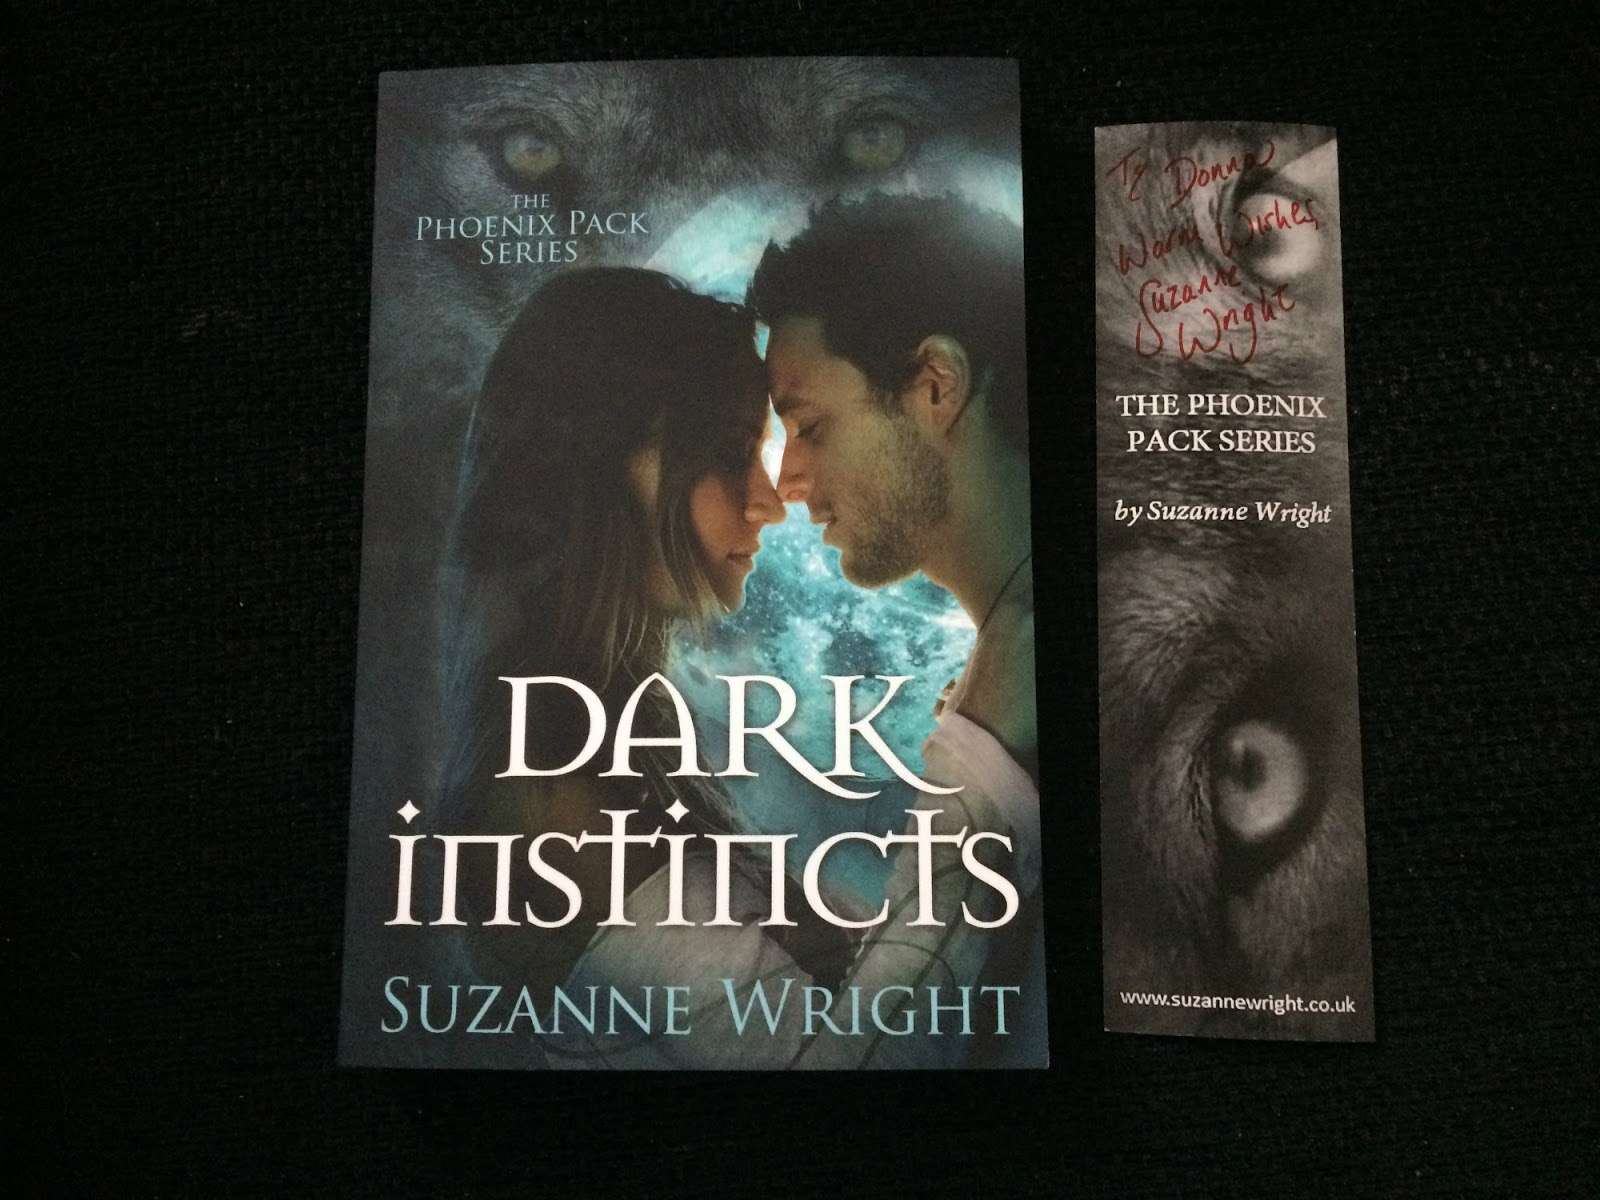 Dark Instincts (the Phoenix Pack #4) By Suzanne Wright